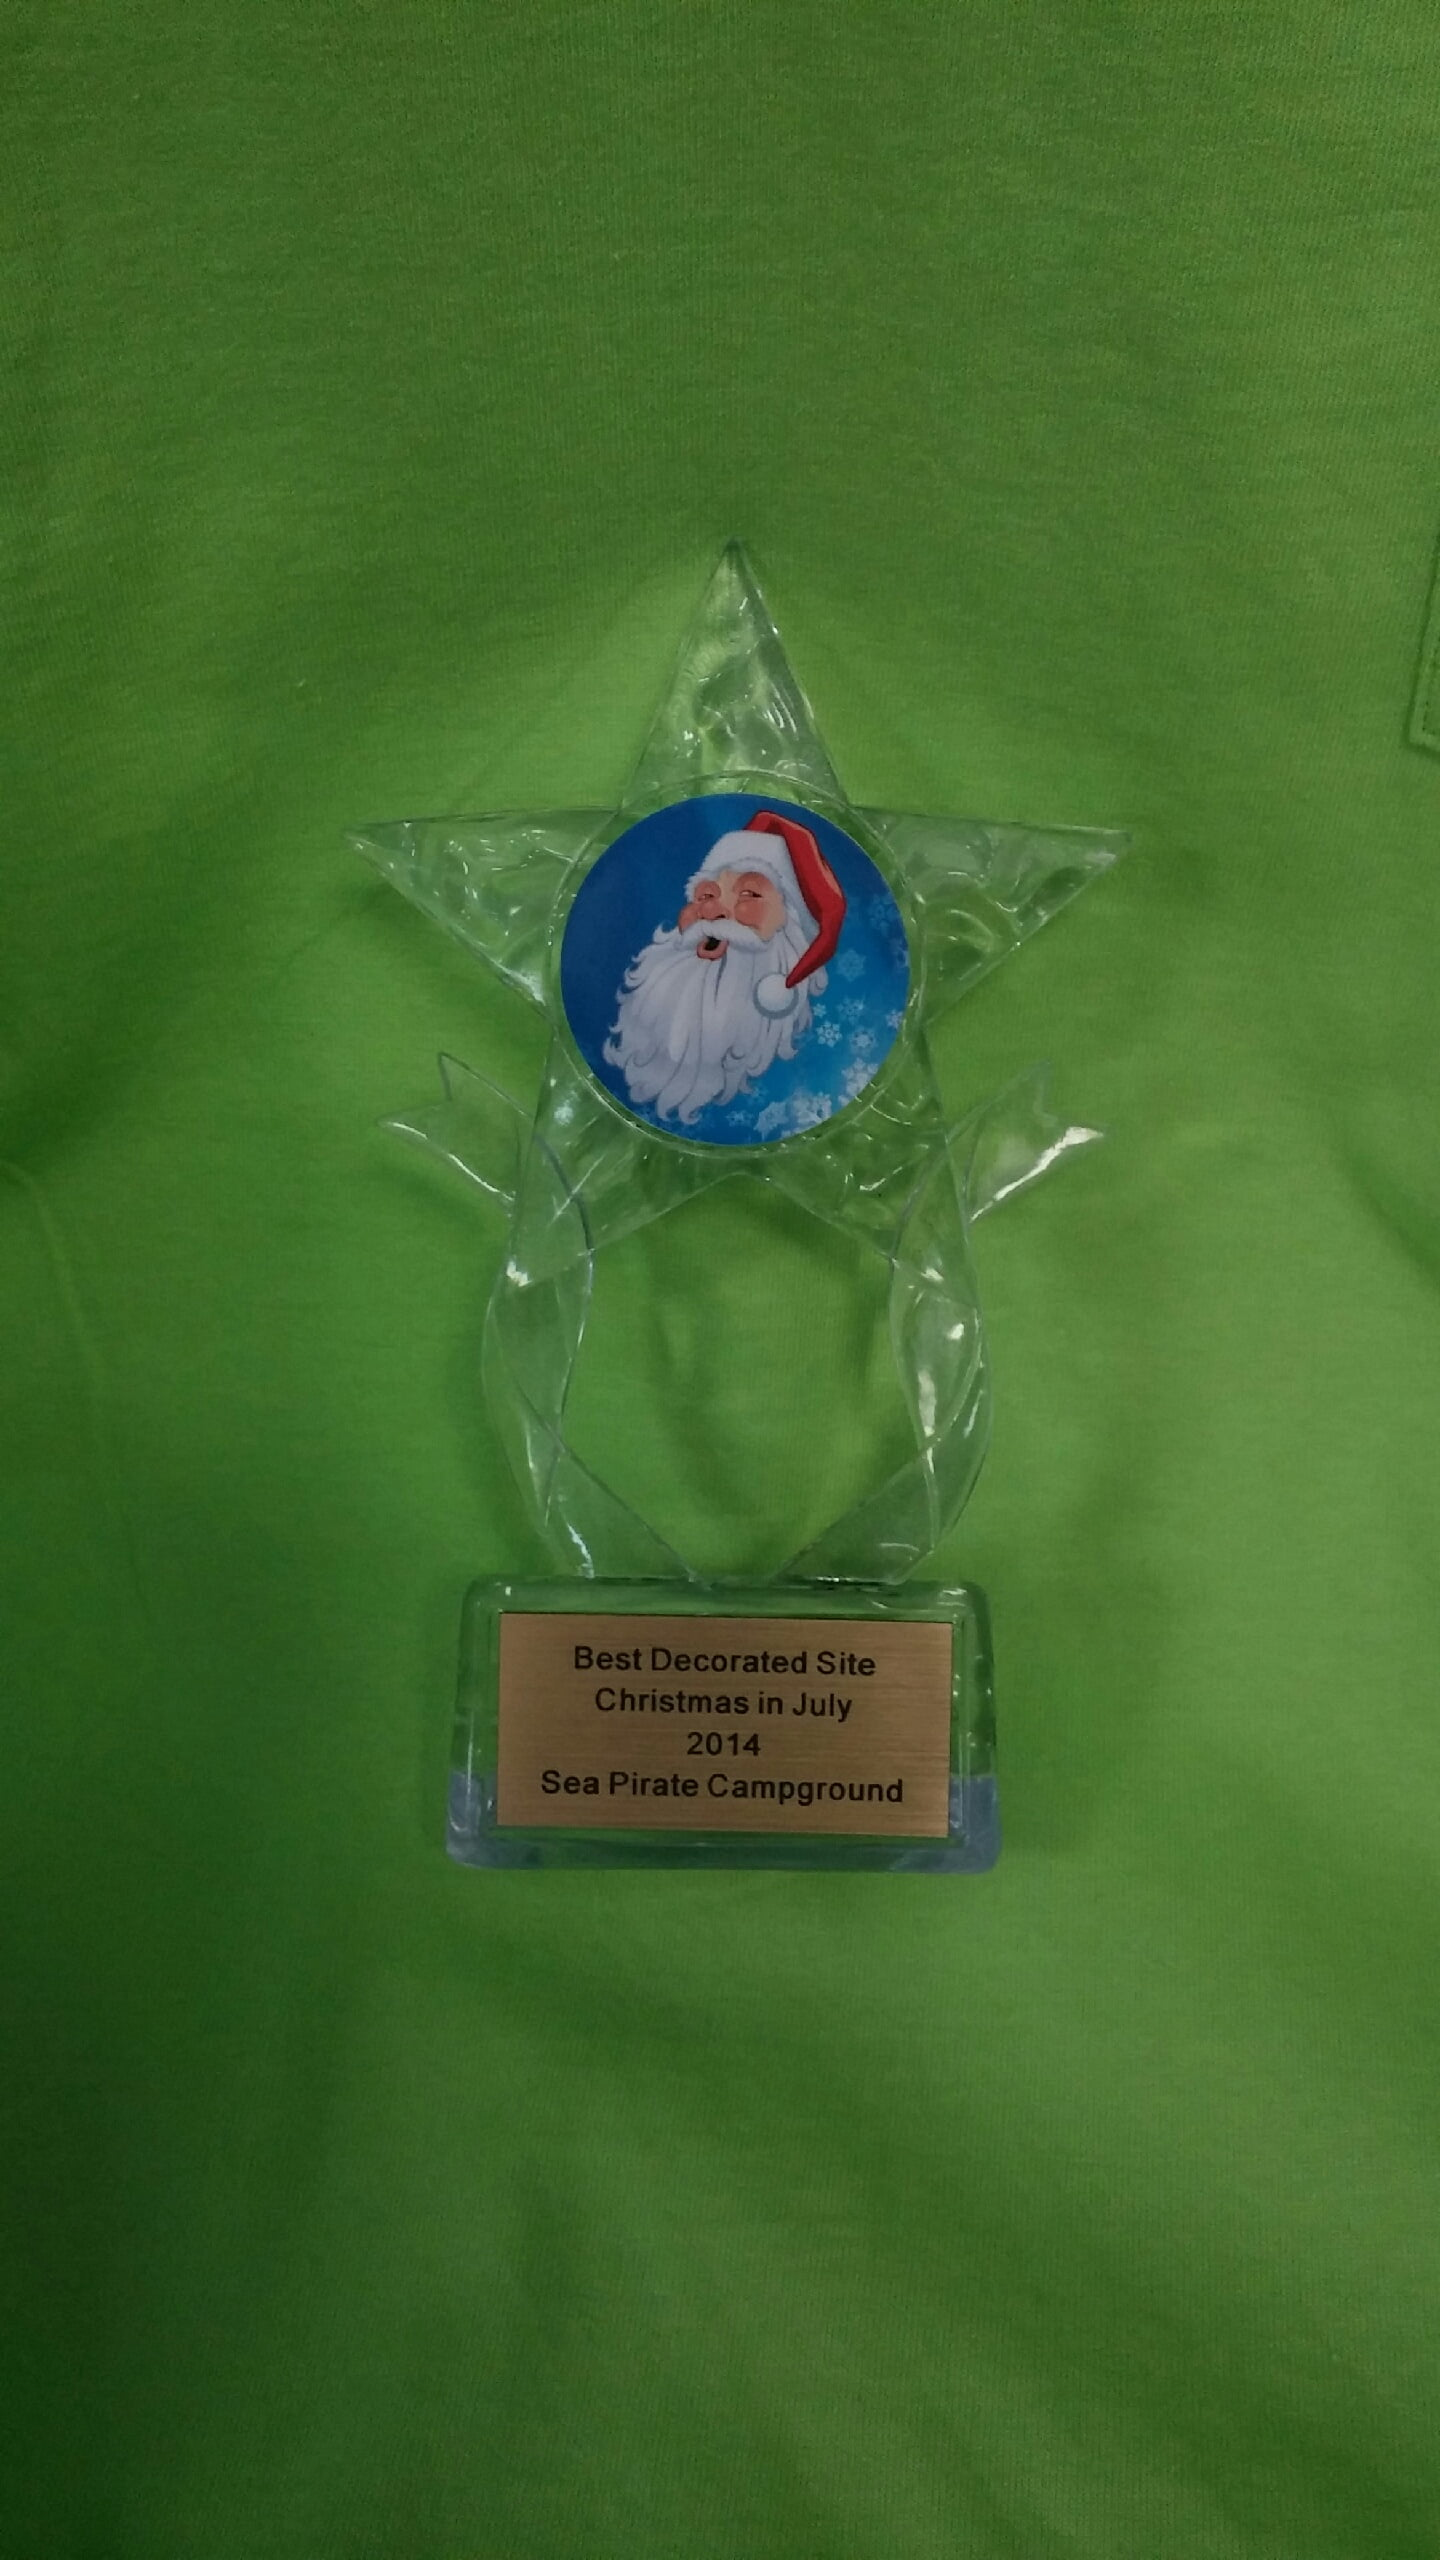 Christmas in July Site Decorating Contest Winners!